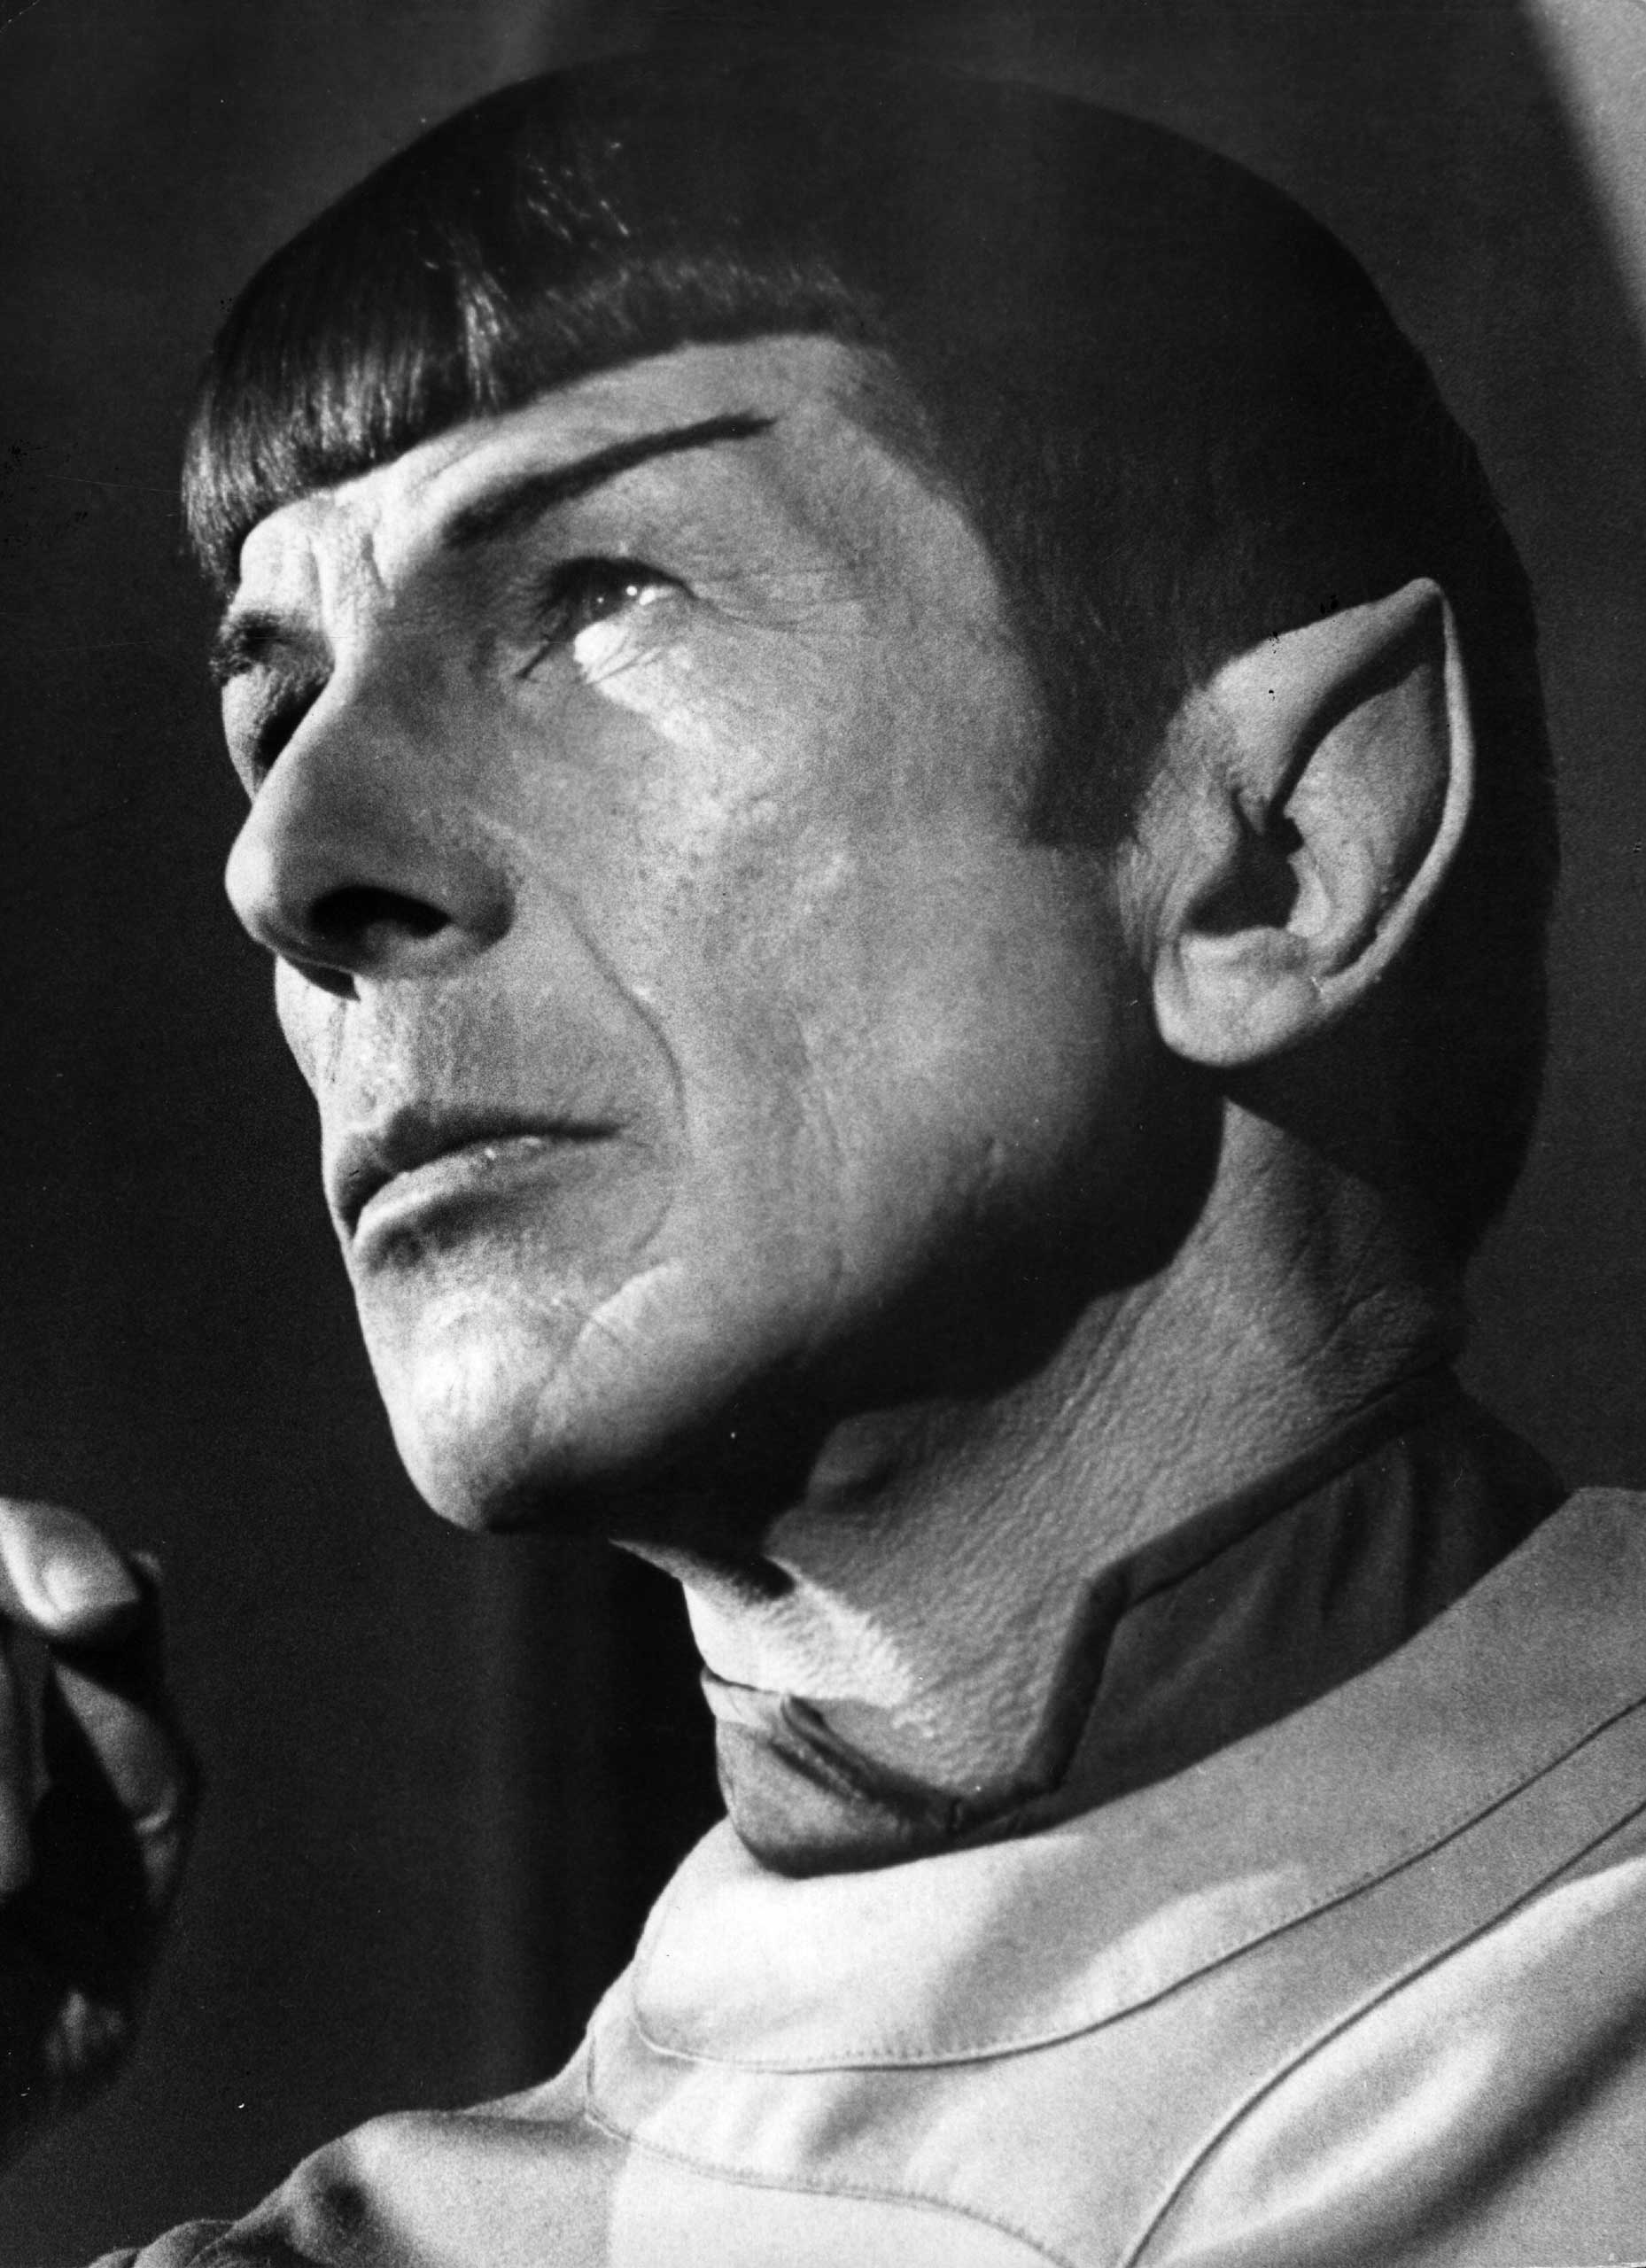 Leonard Nimoy as Mr Spock from the film 'Star Trek - The Motion Picture', 1979.